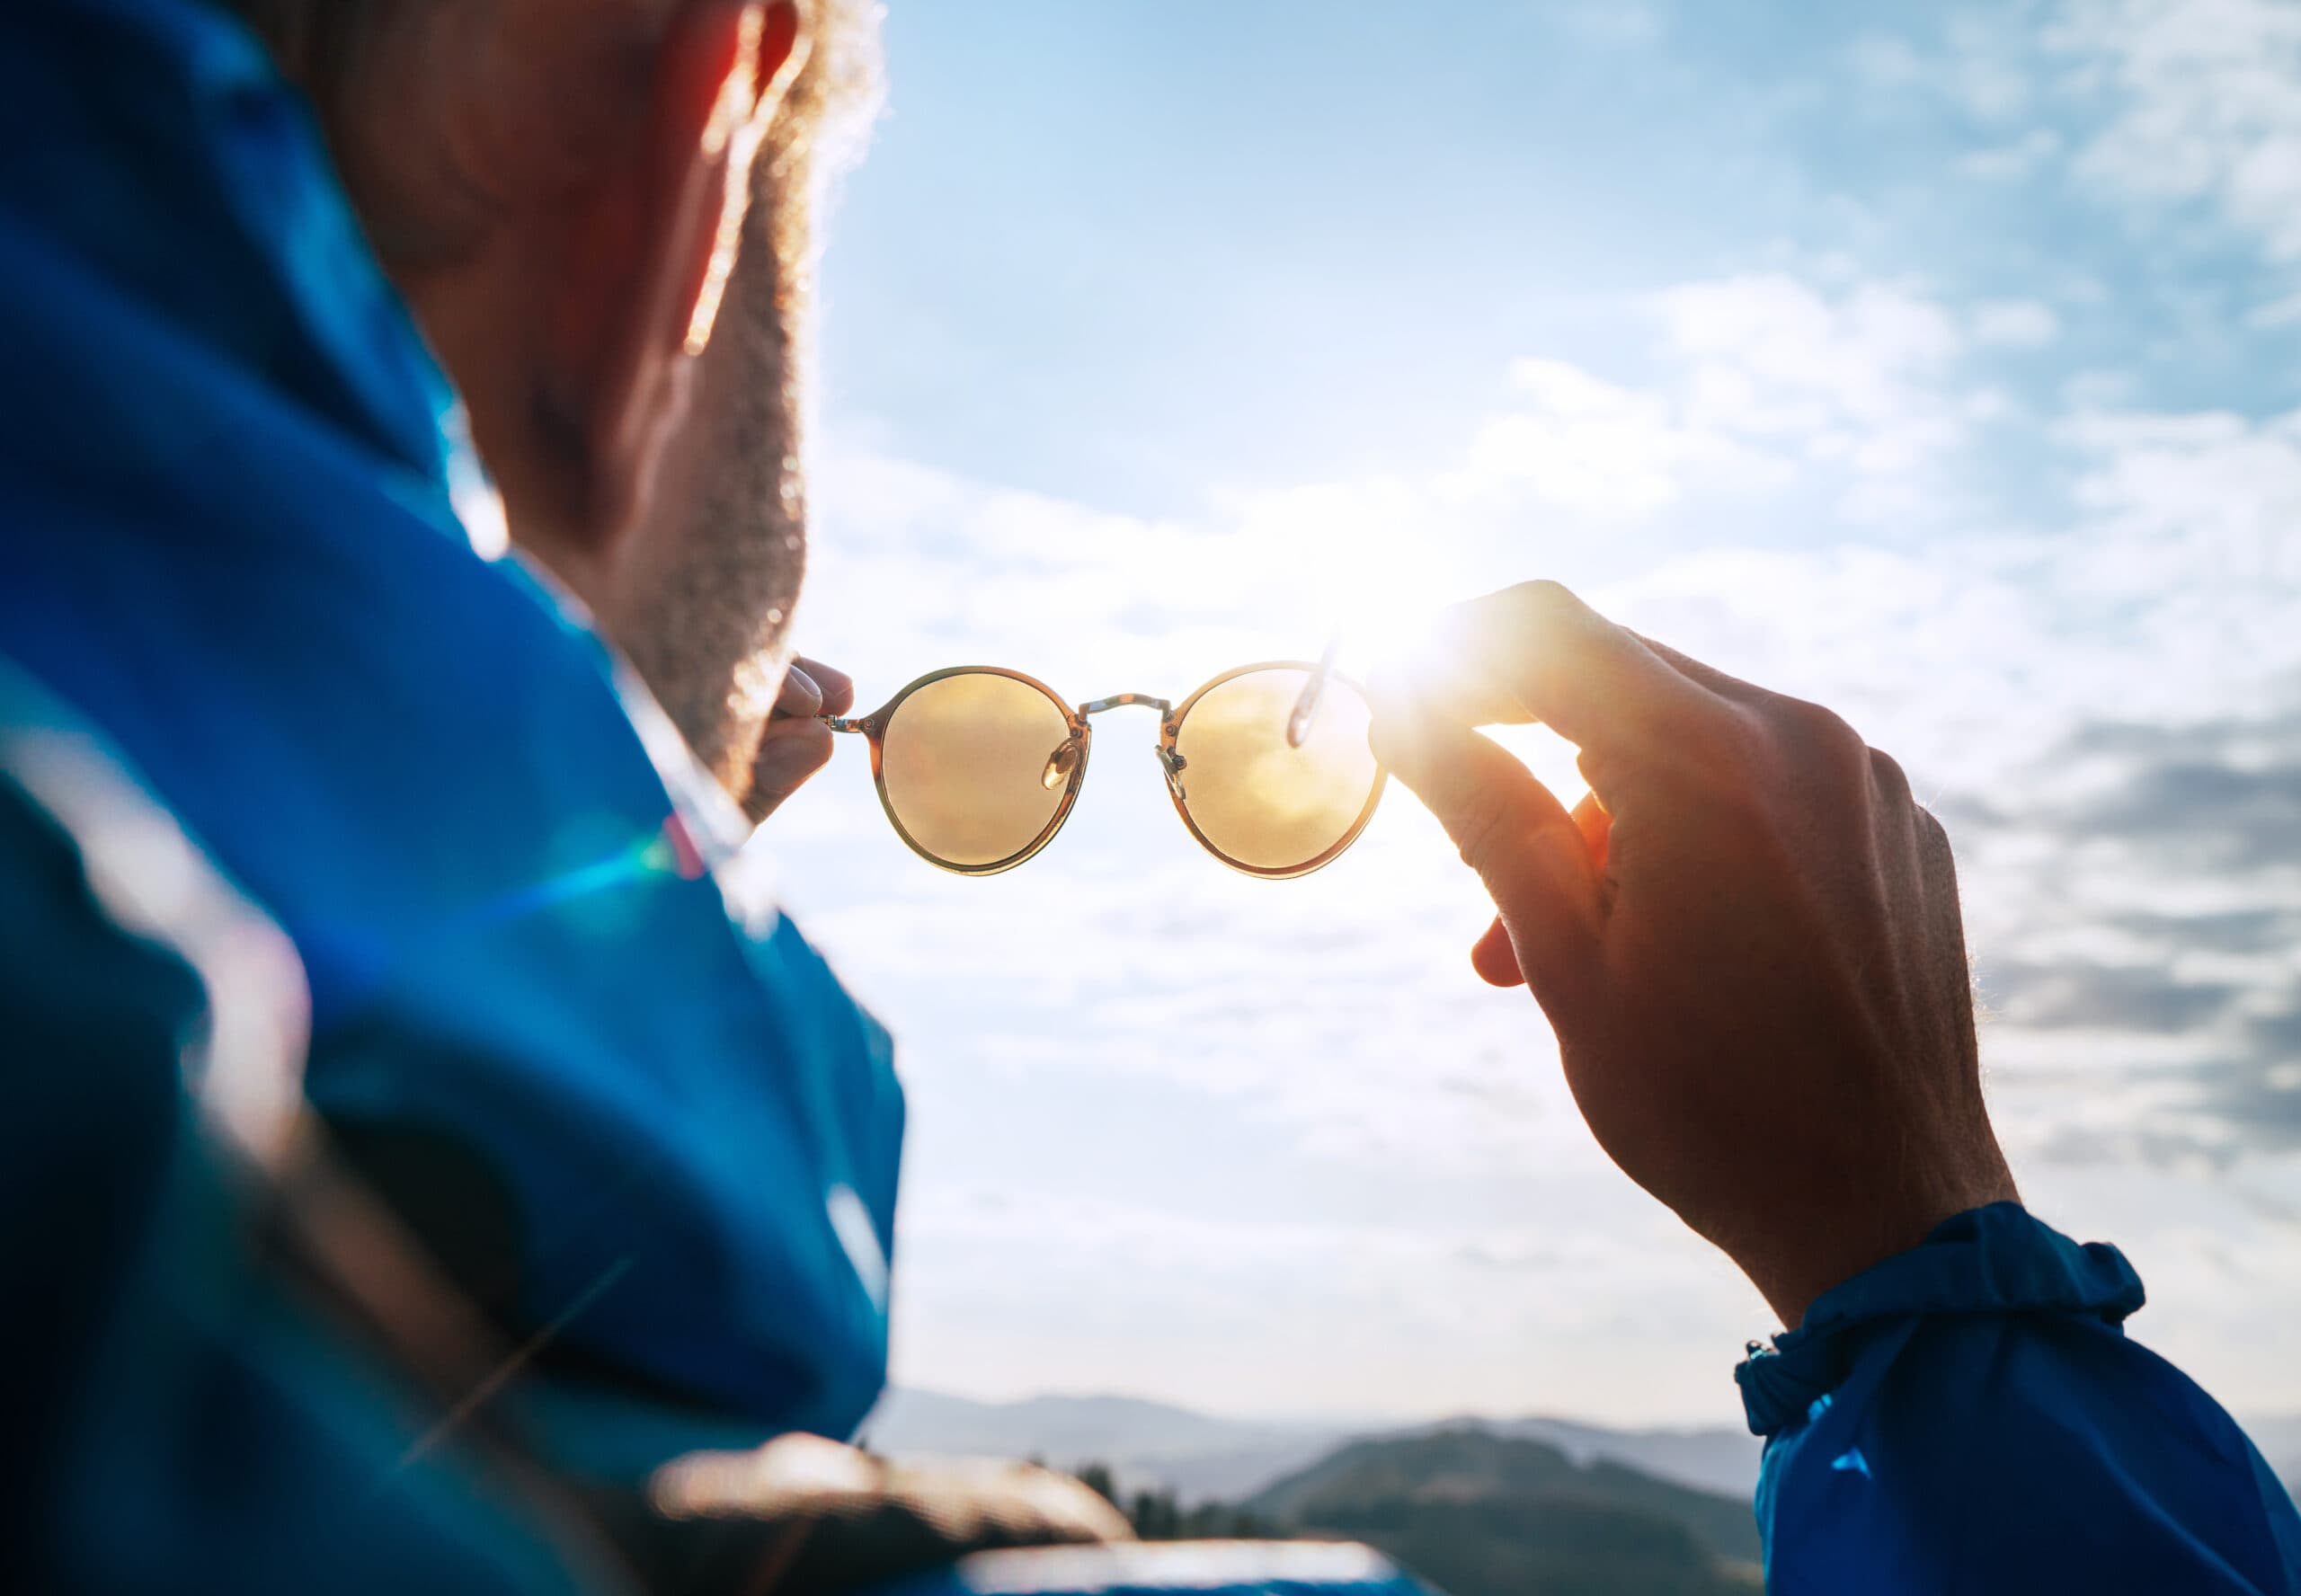 Prescription sunglasses can get expensive, which is why some look into LASIK